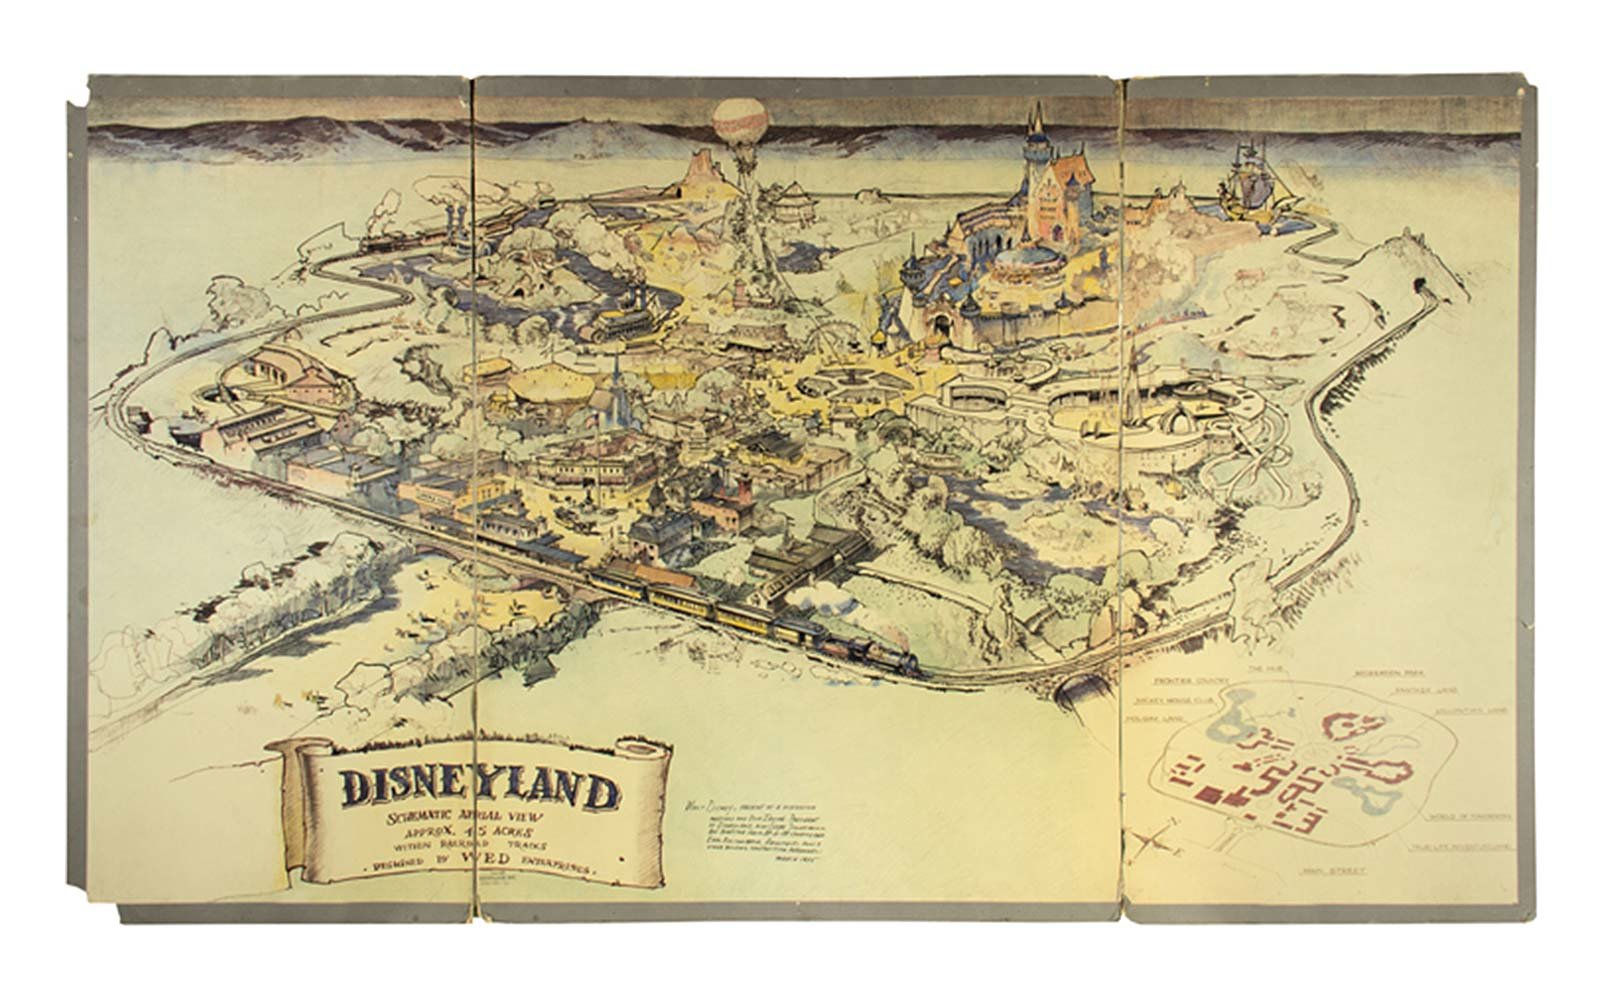 Disney Los Angeles Map.The Map Of Disneyland That Walt Disney Designed In 1953 Is Going To